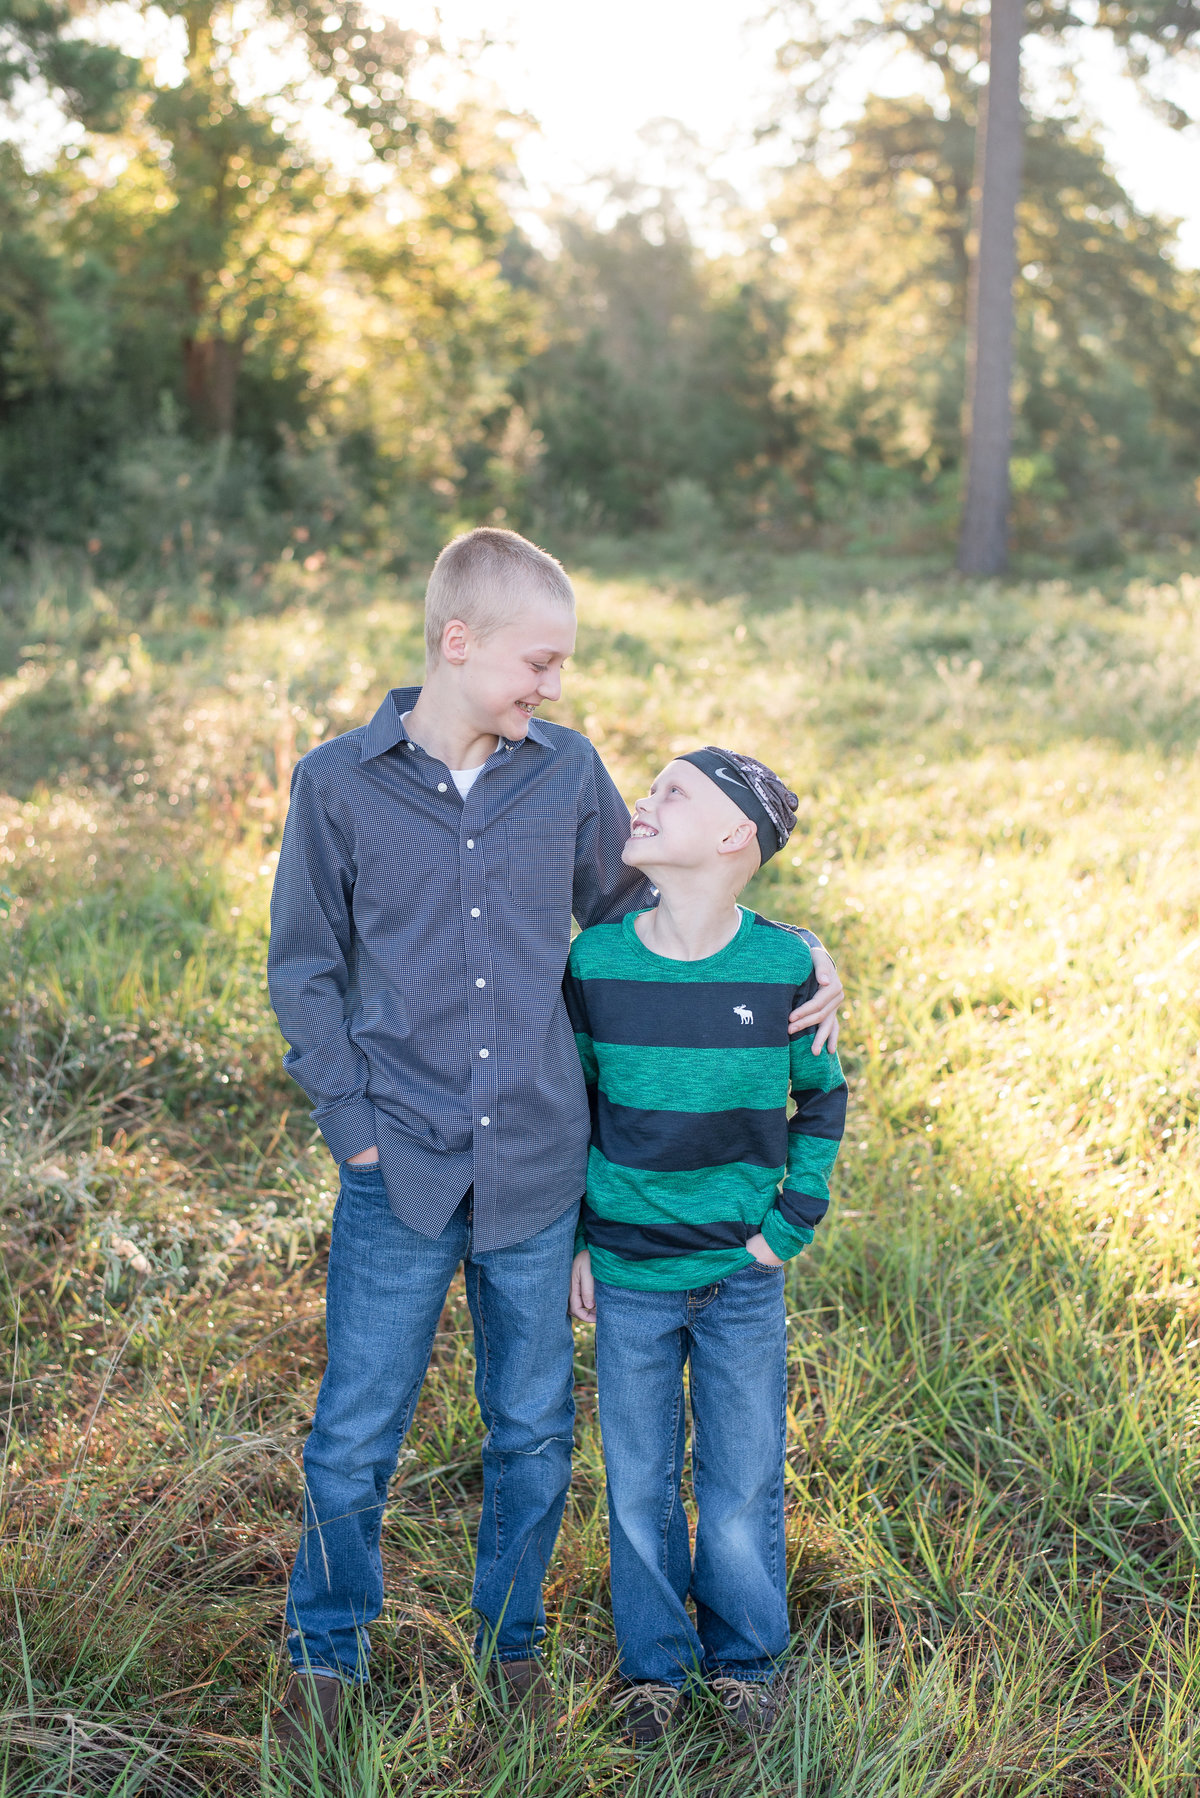 KingwoodFamilyPhotographer_Brewer-7